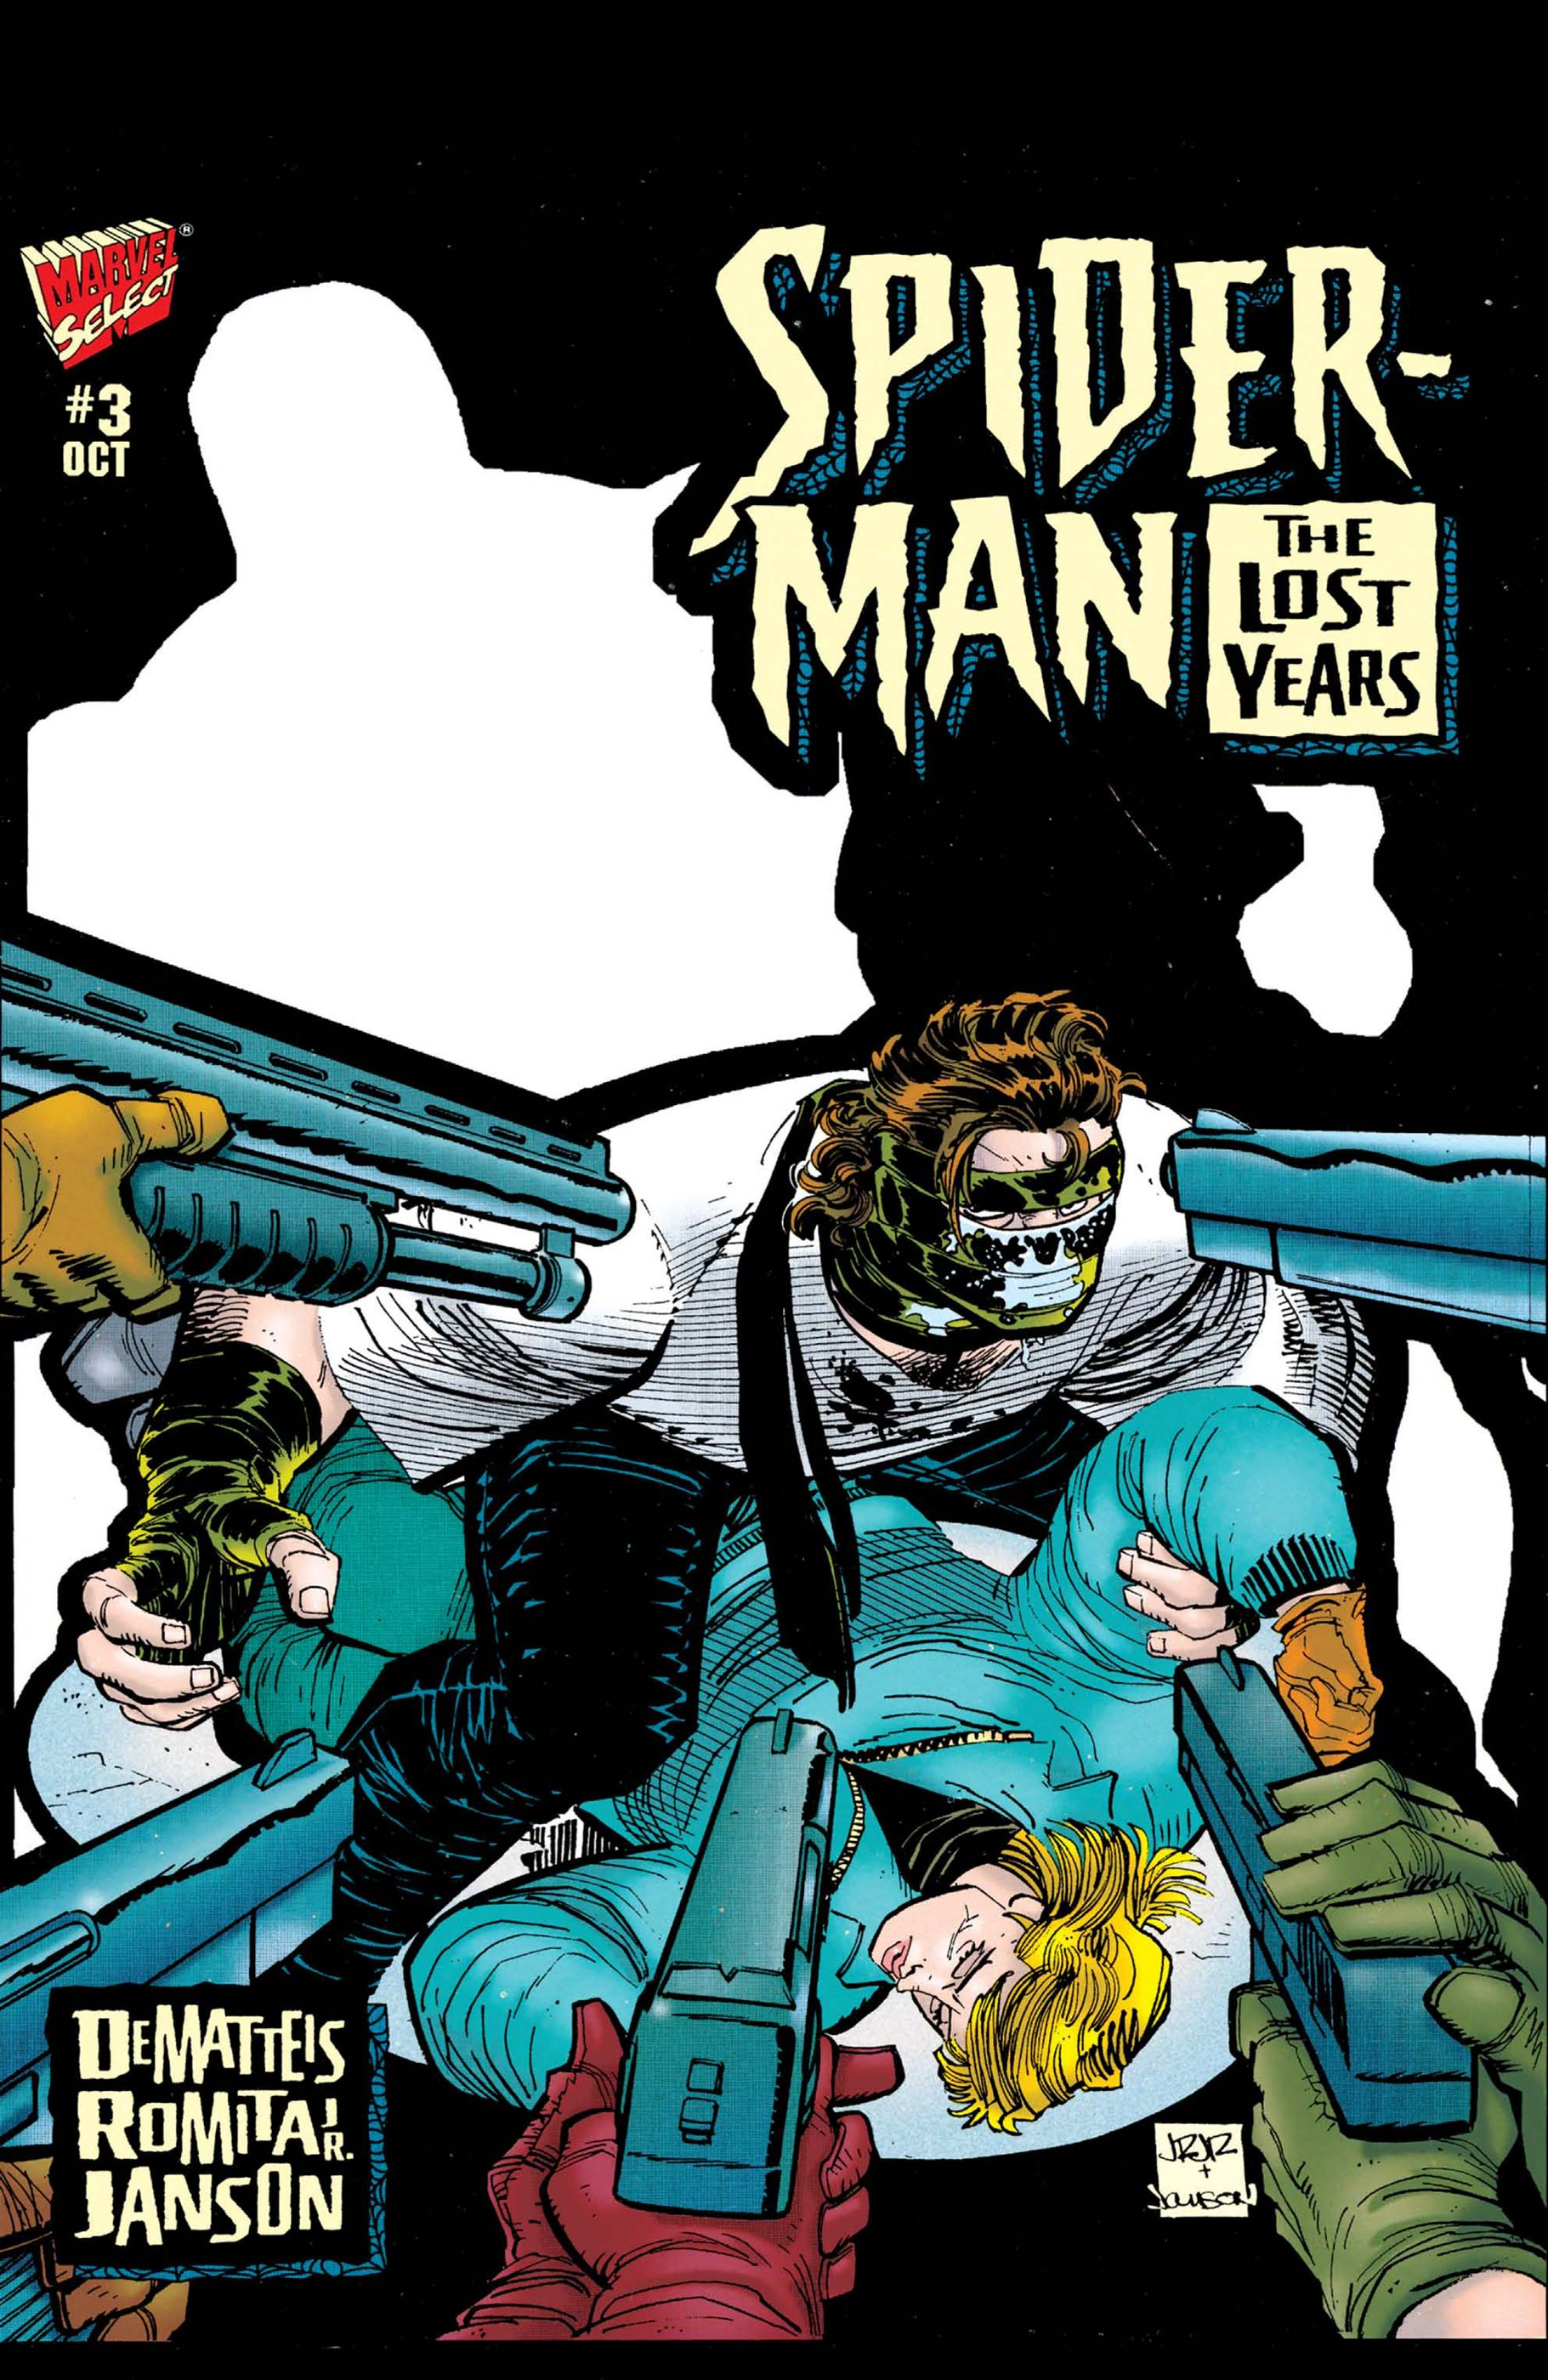 Spider-Man: The Lost Years (1995) #3